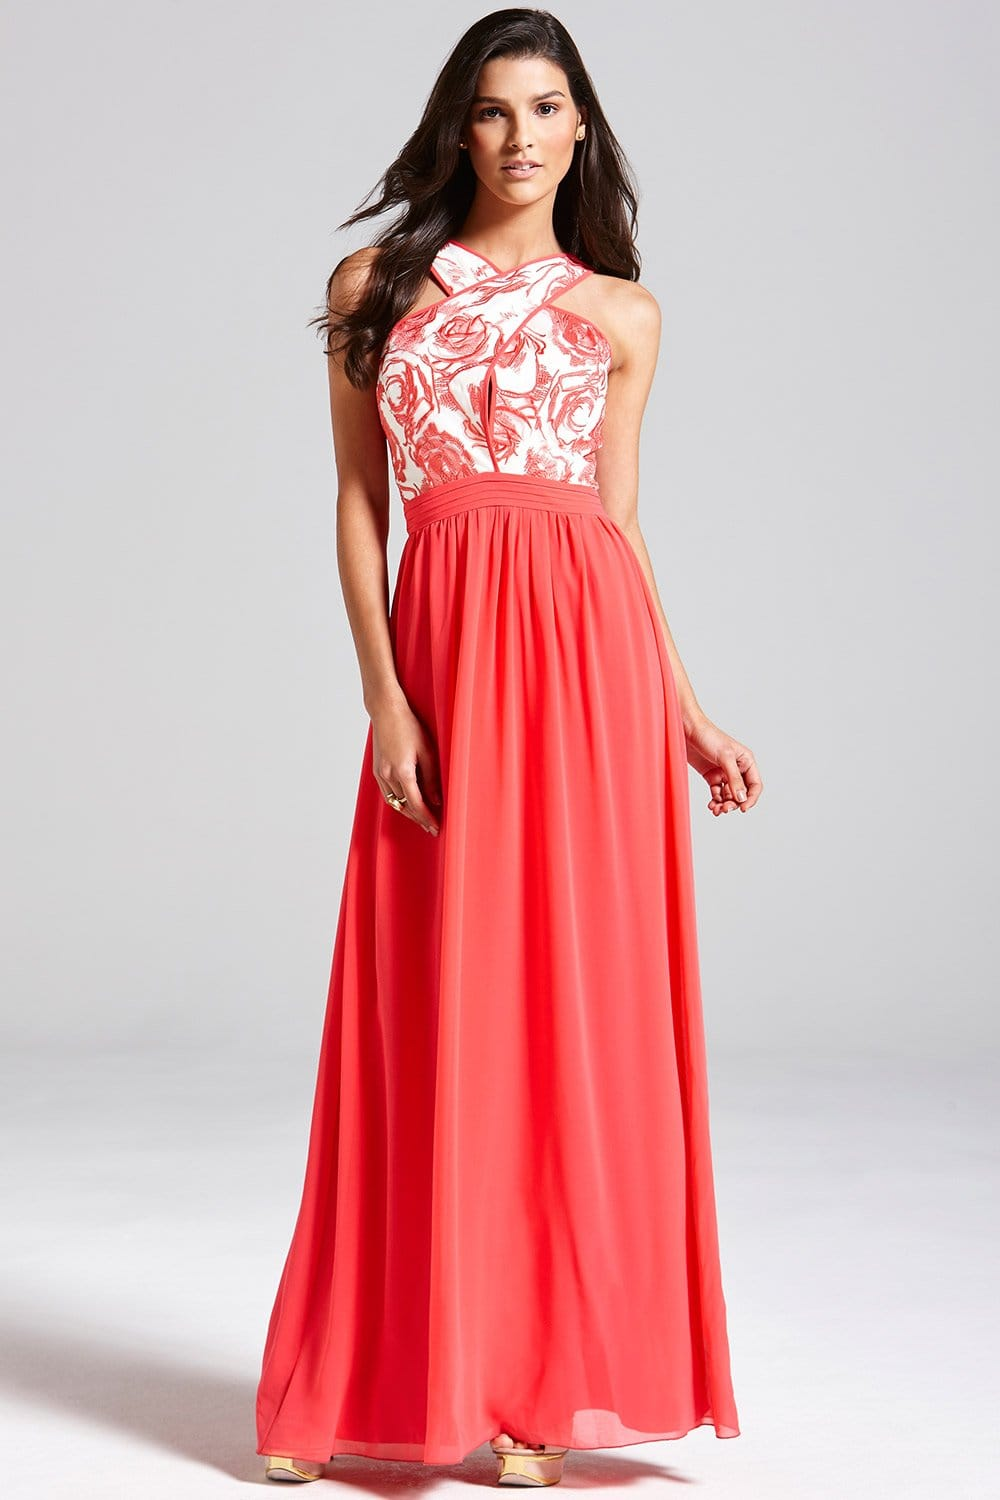 Coral and Cream Floral Top Maxi Dress  from Little Mistress UK